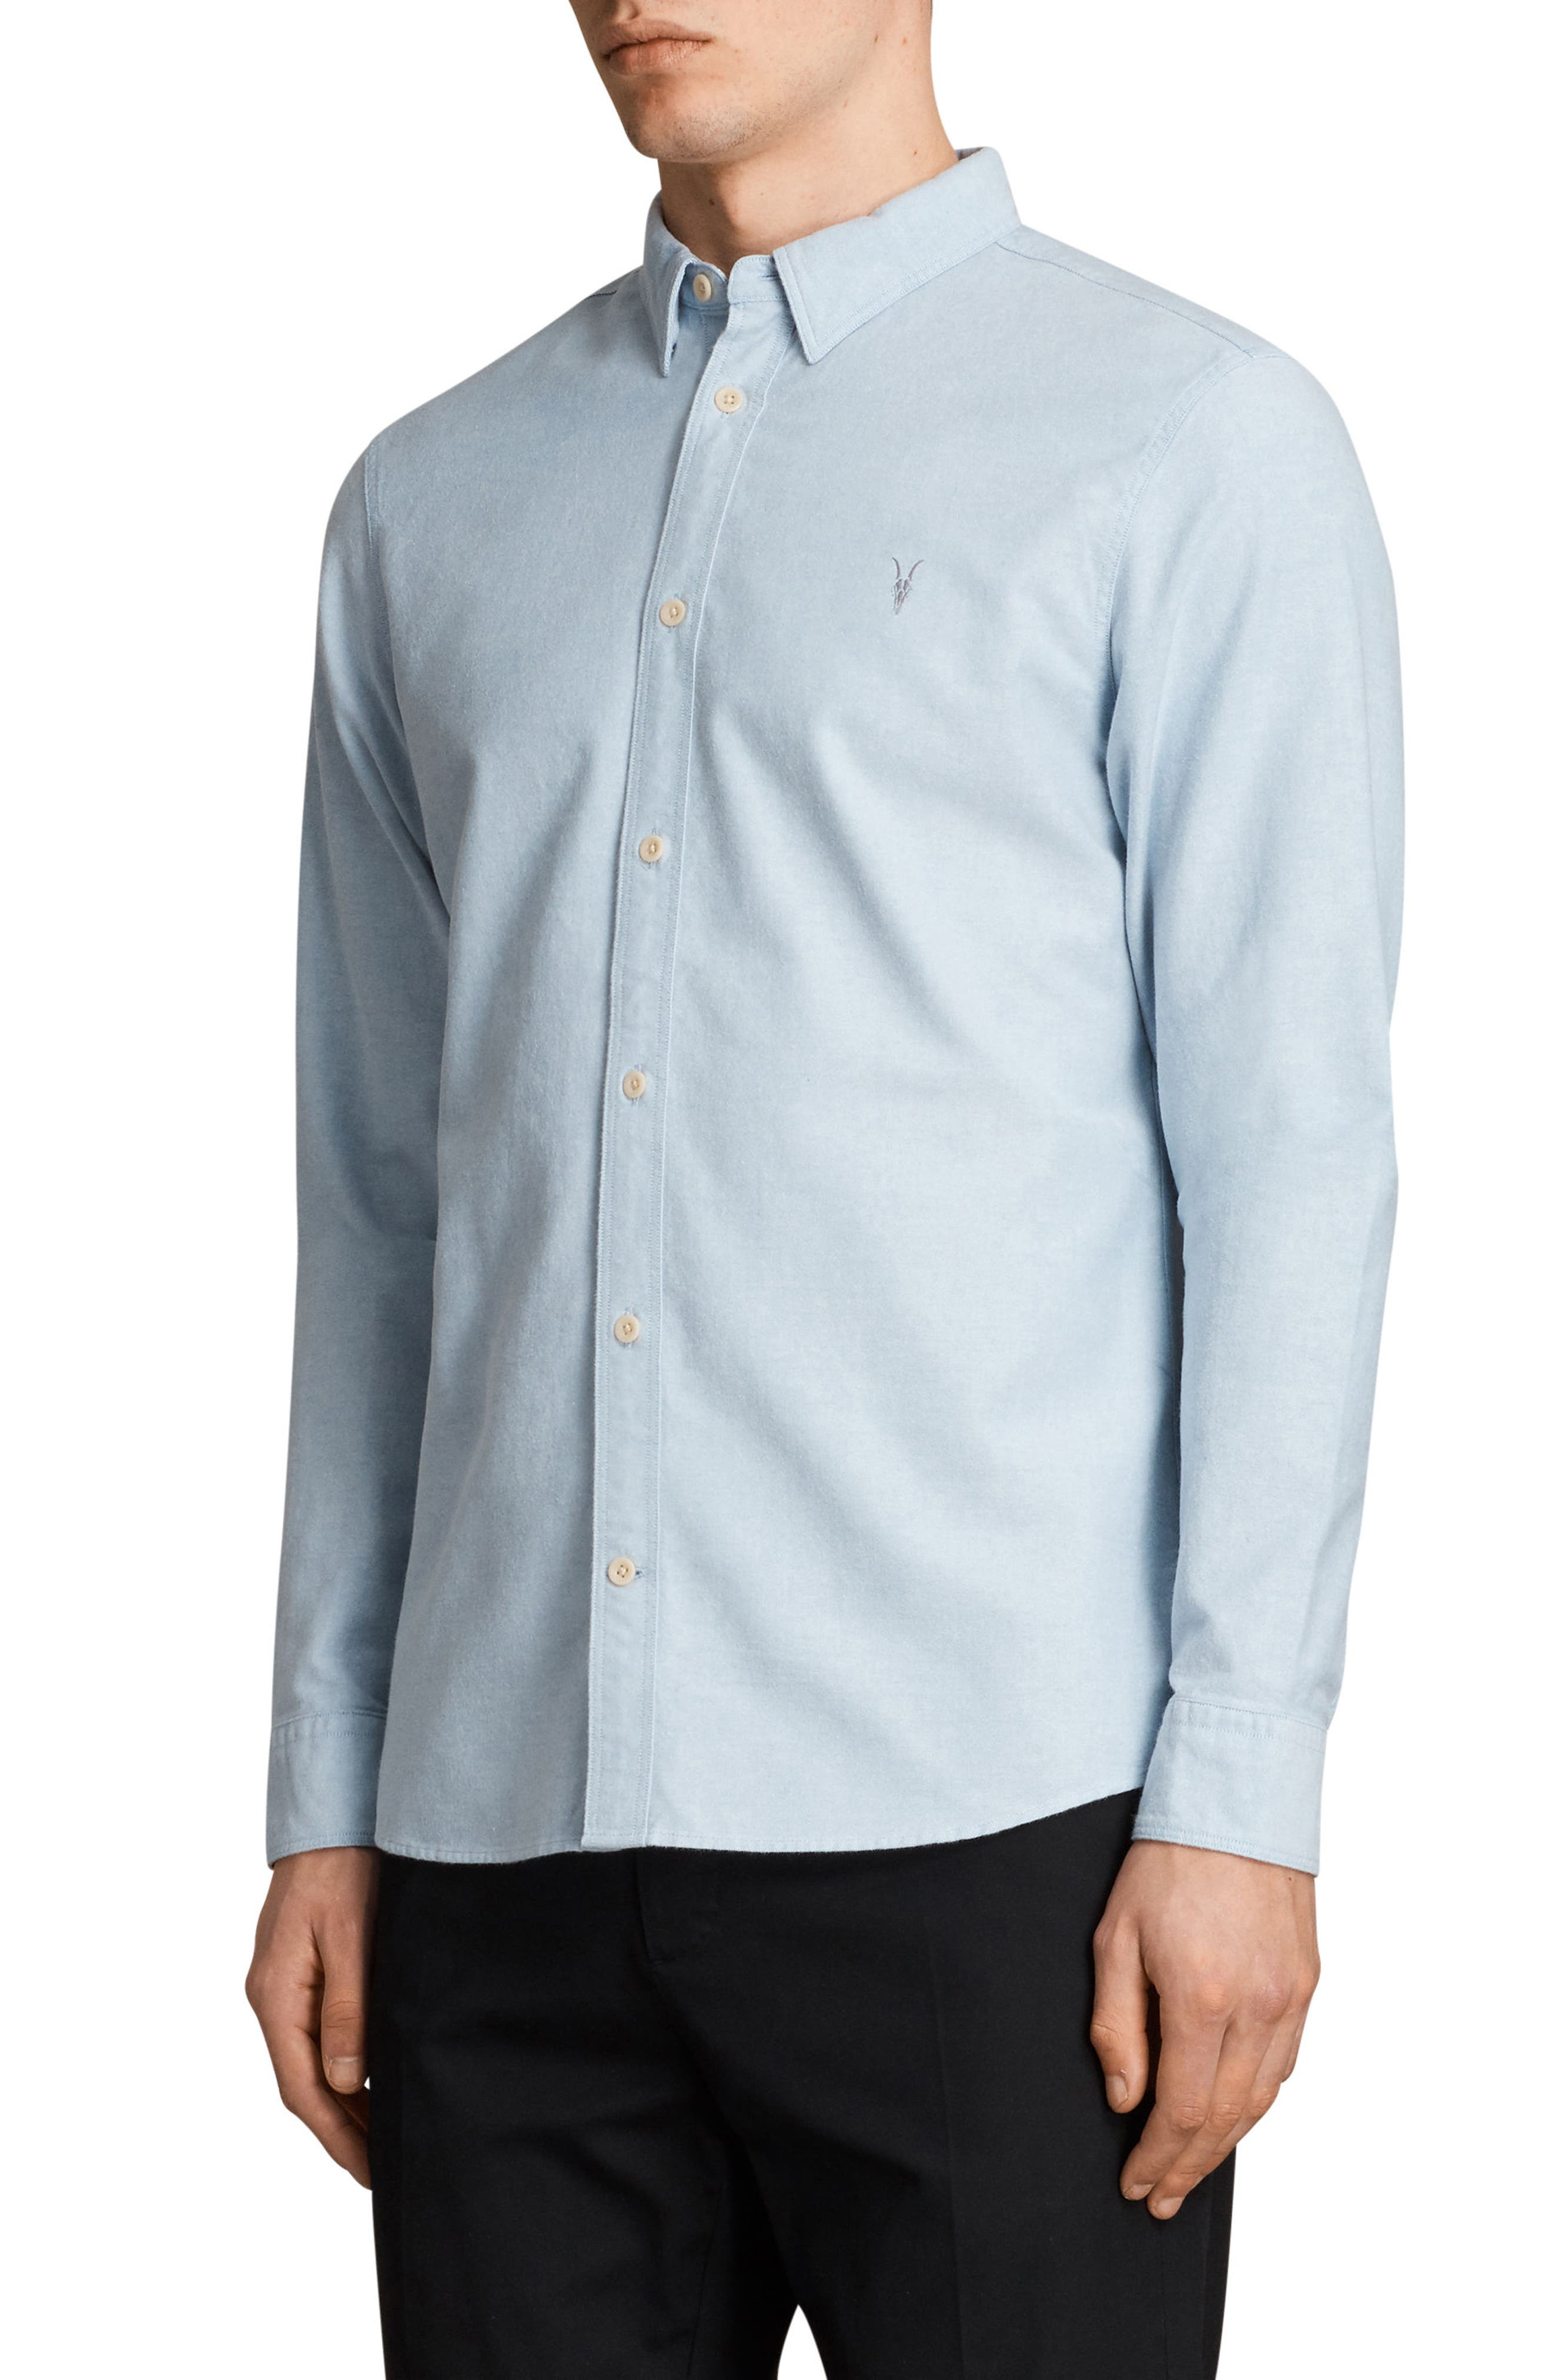 Huntington Regular Fit Sport Shirt,                             Alternate thumbnail 3, color,                             Light Blue